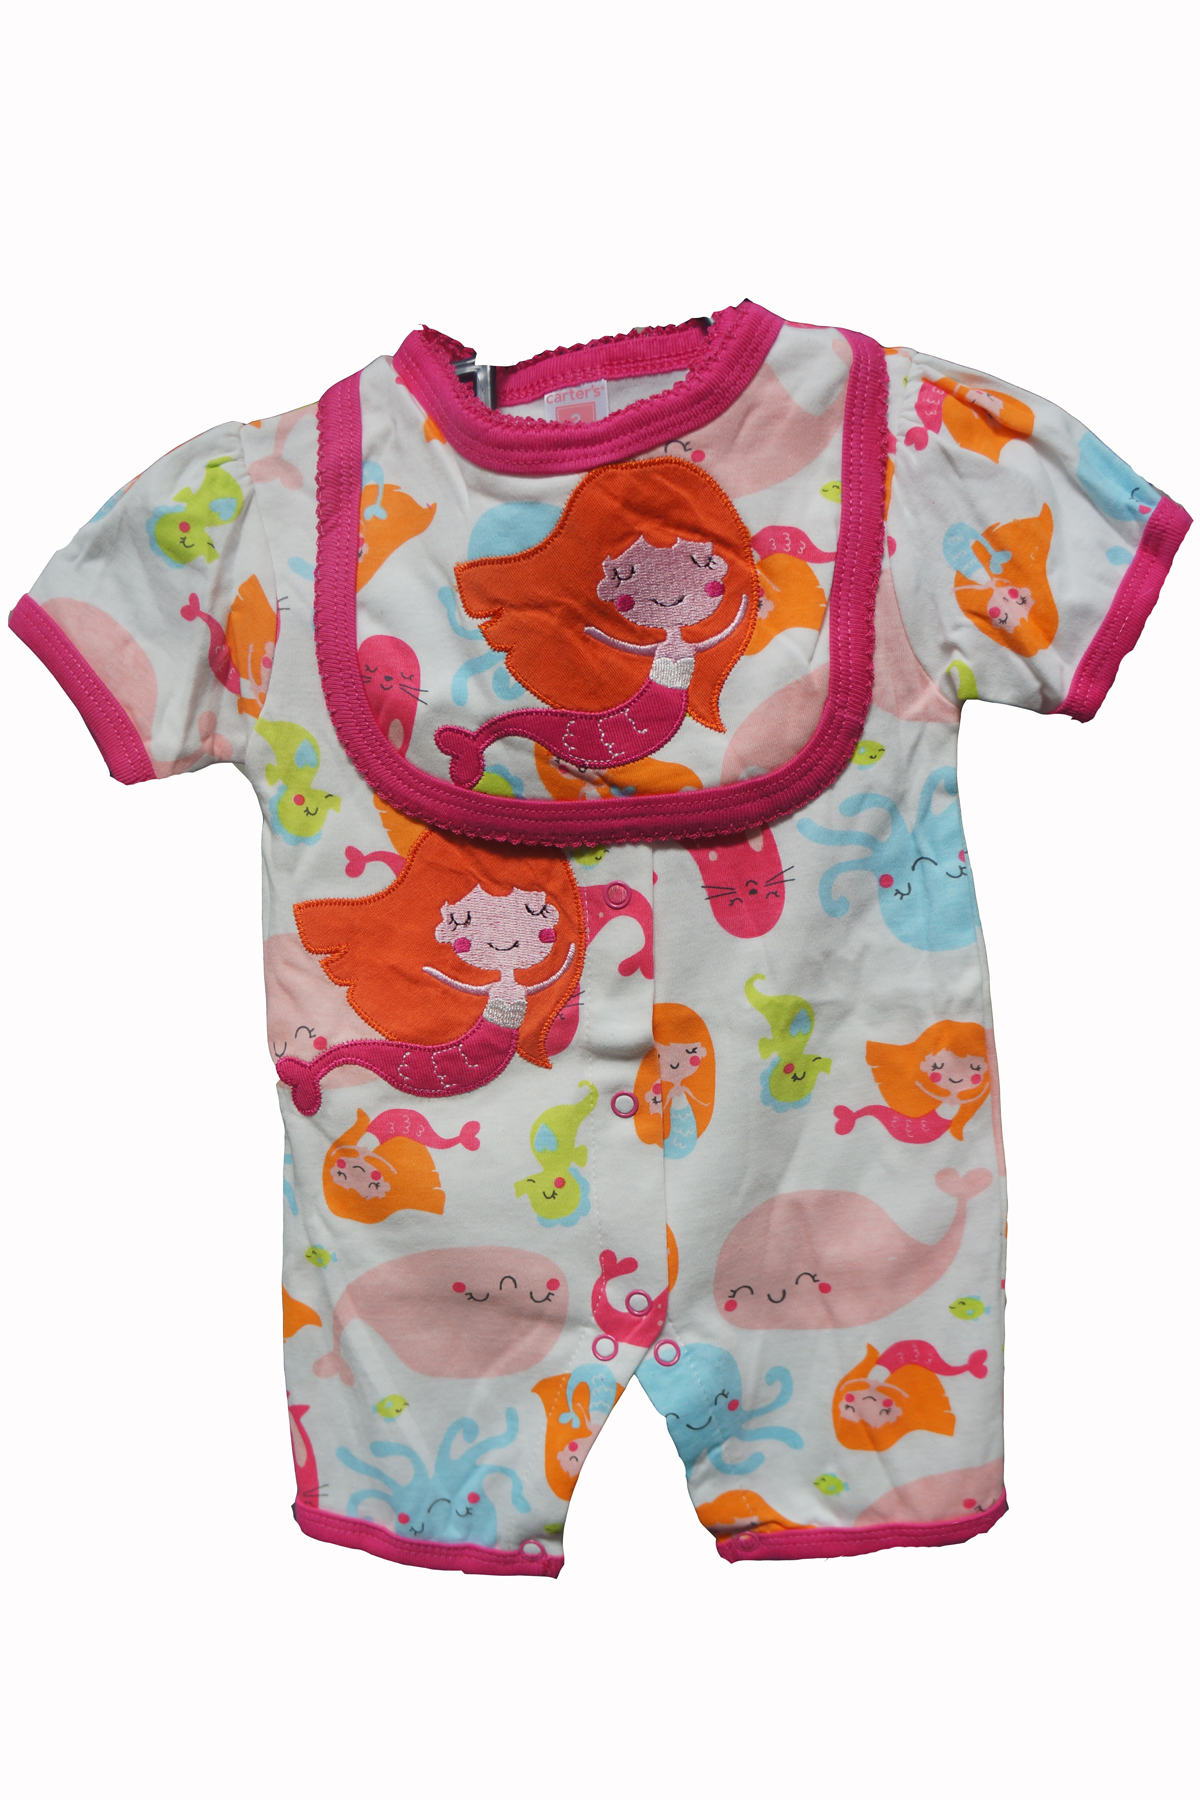 Little Mermaid Baby Romper Bib end 10 24 2019 11 02 PM